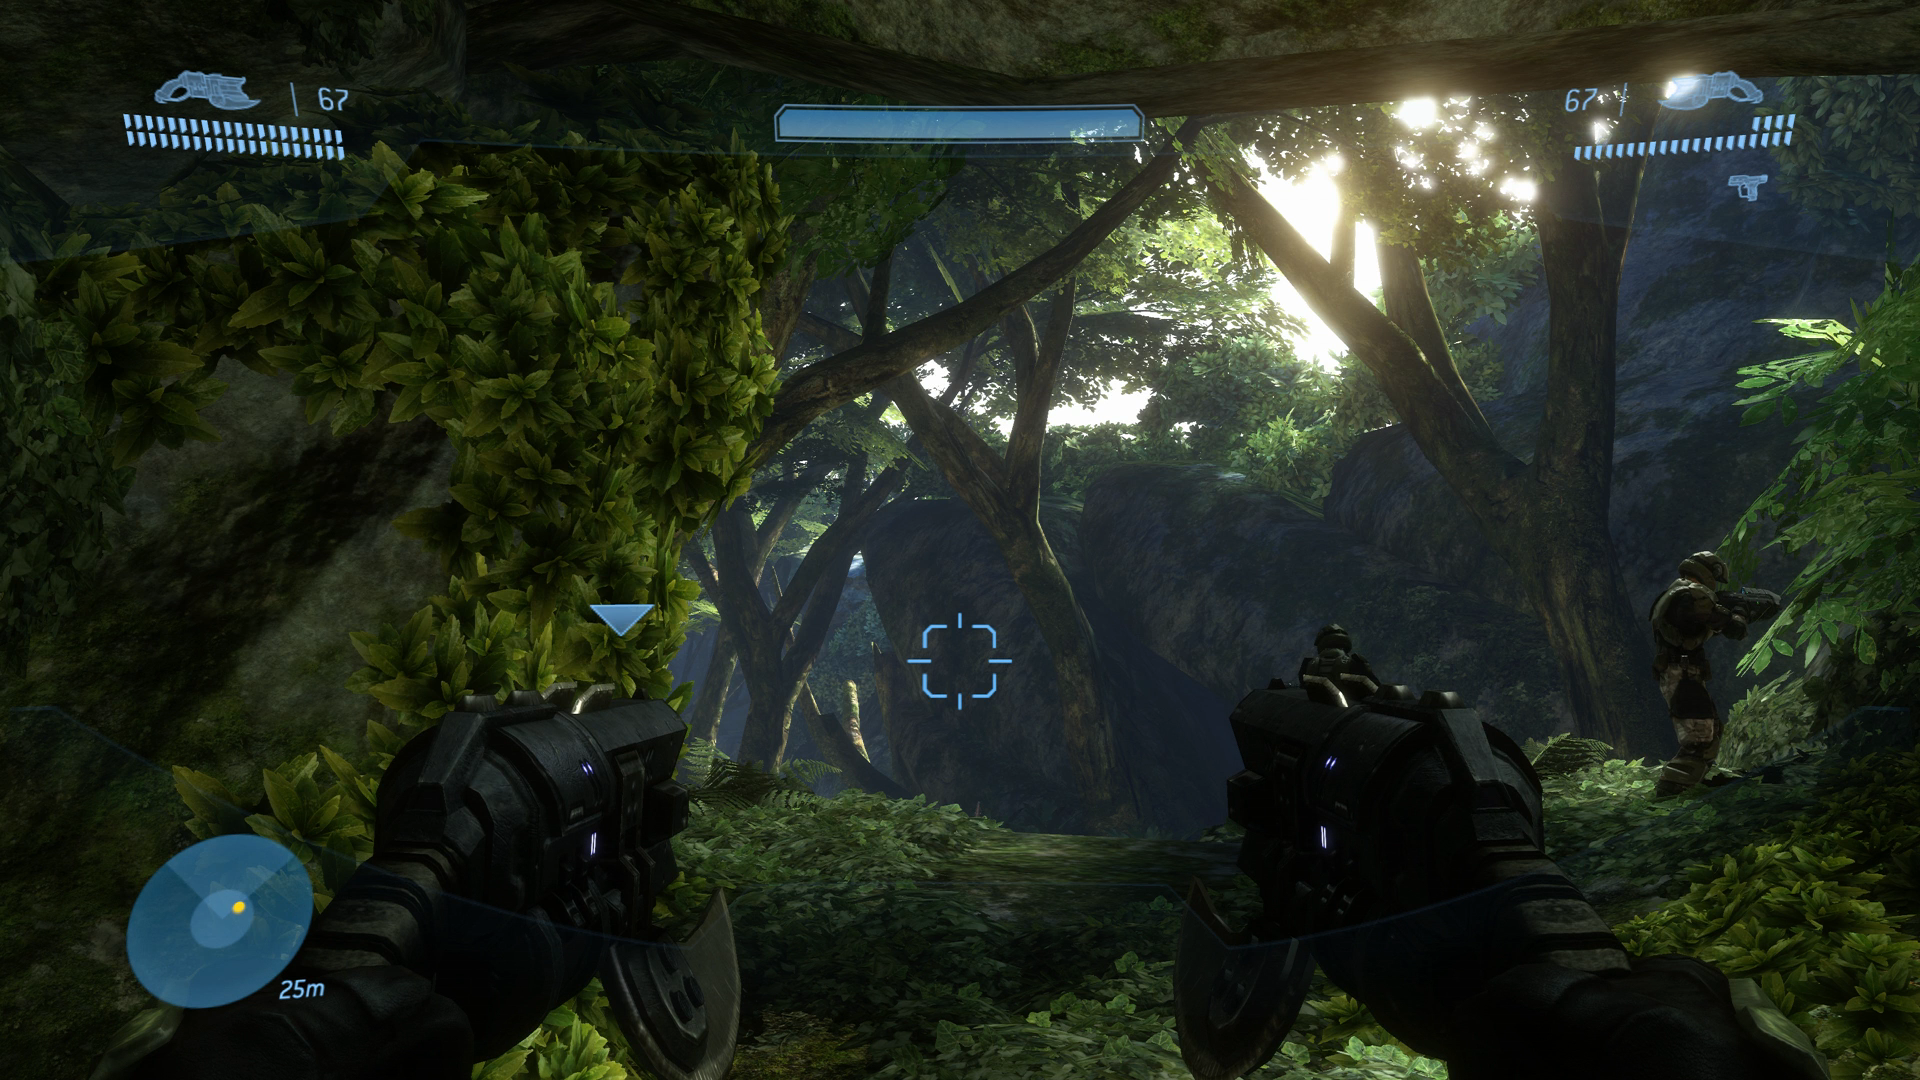 foliage and sun shining through trees in Halo 3 running on an Xbox One X